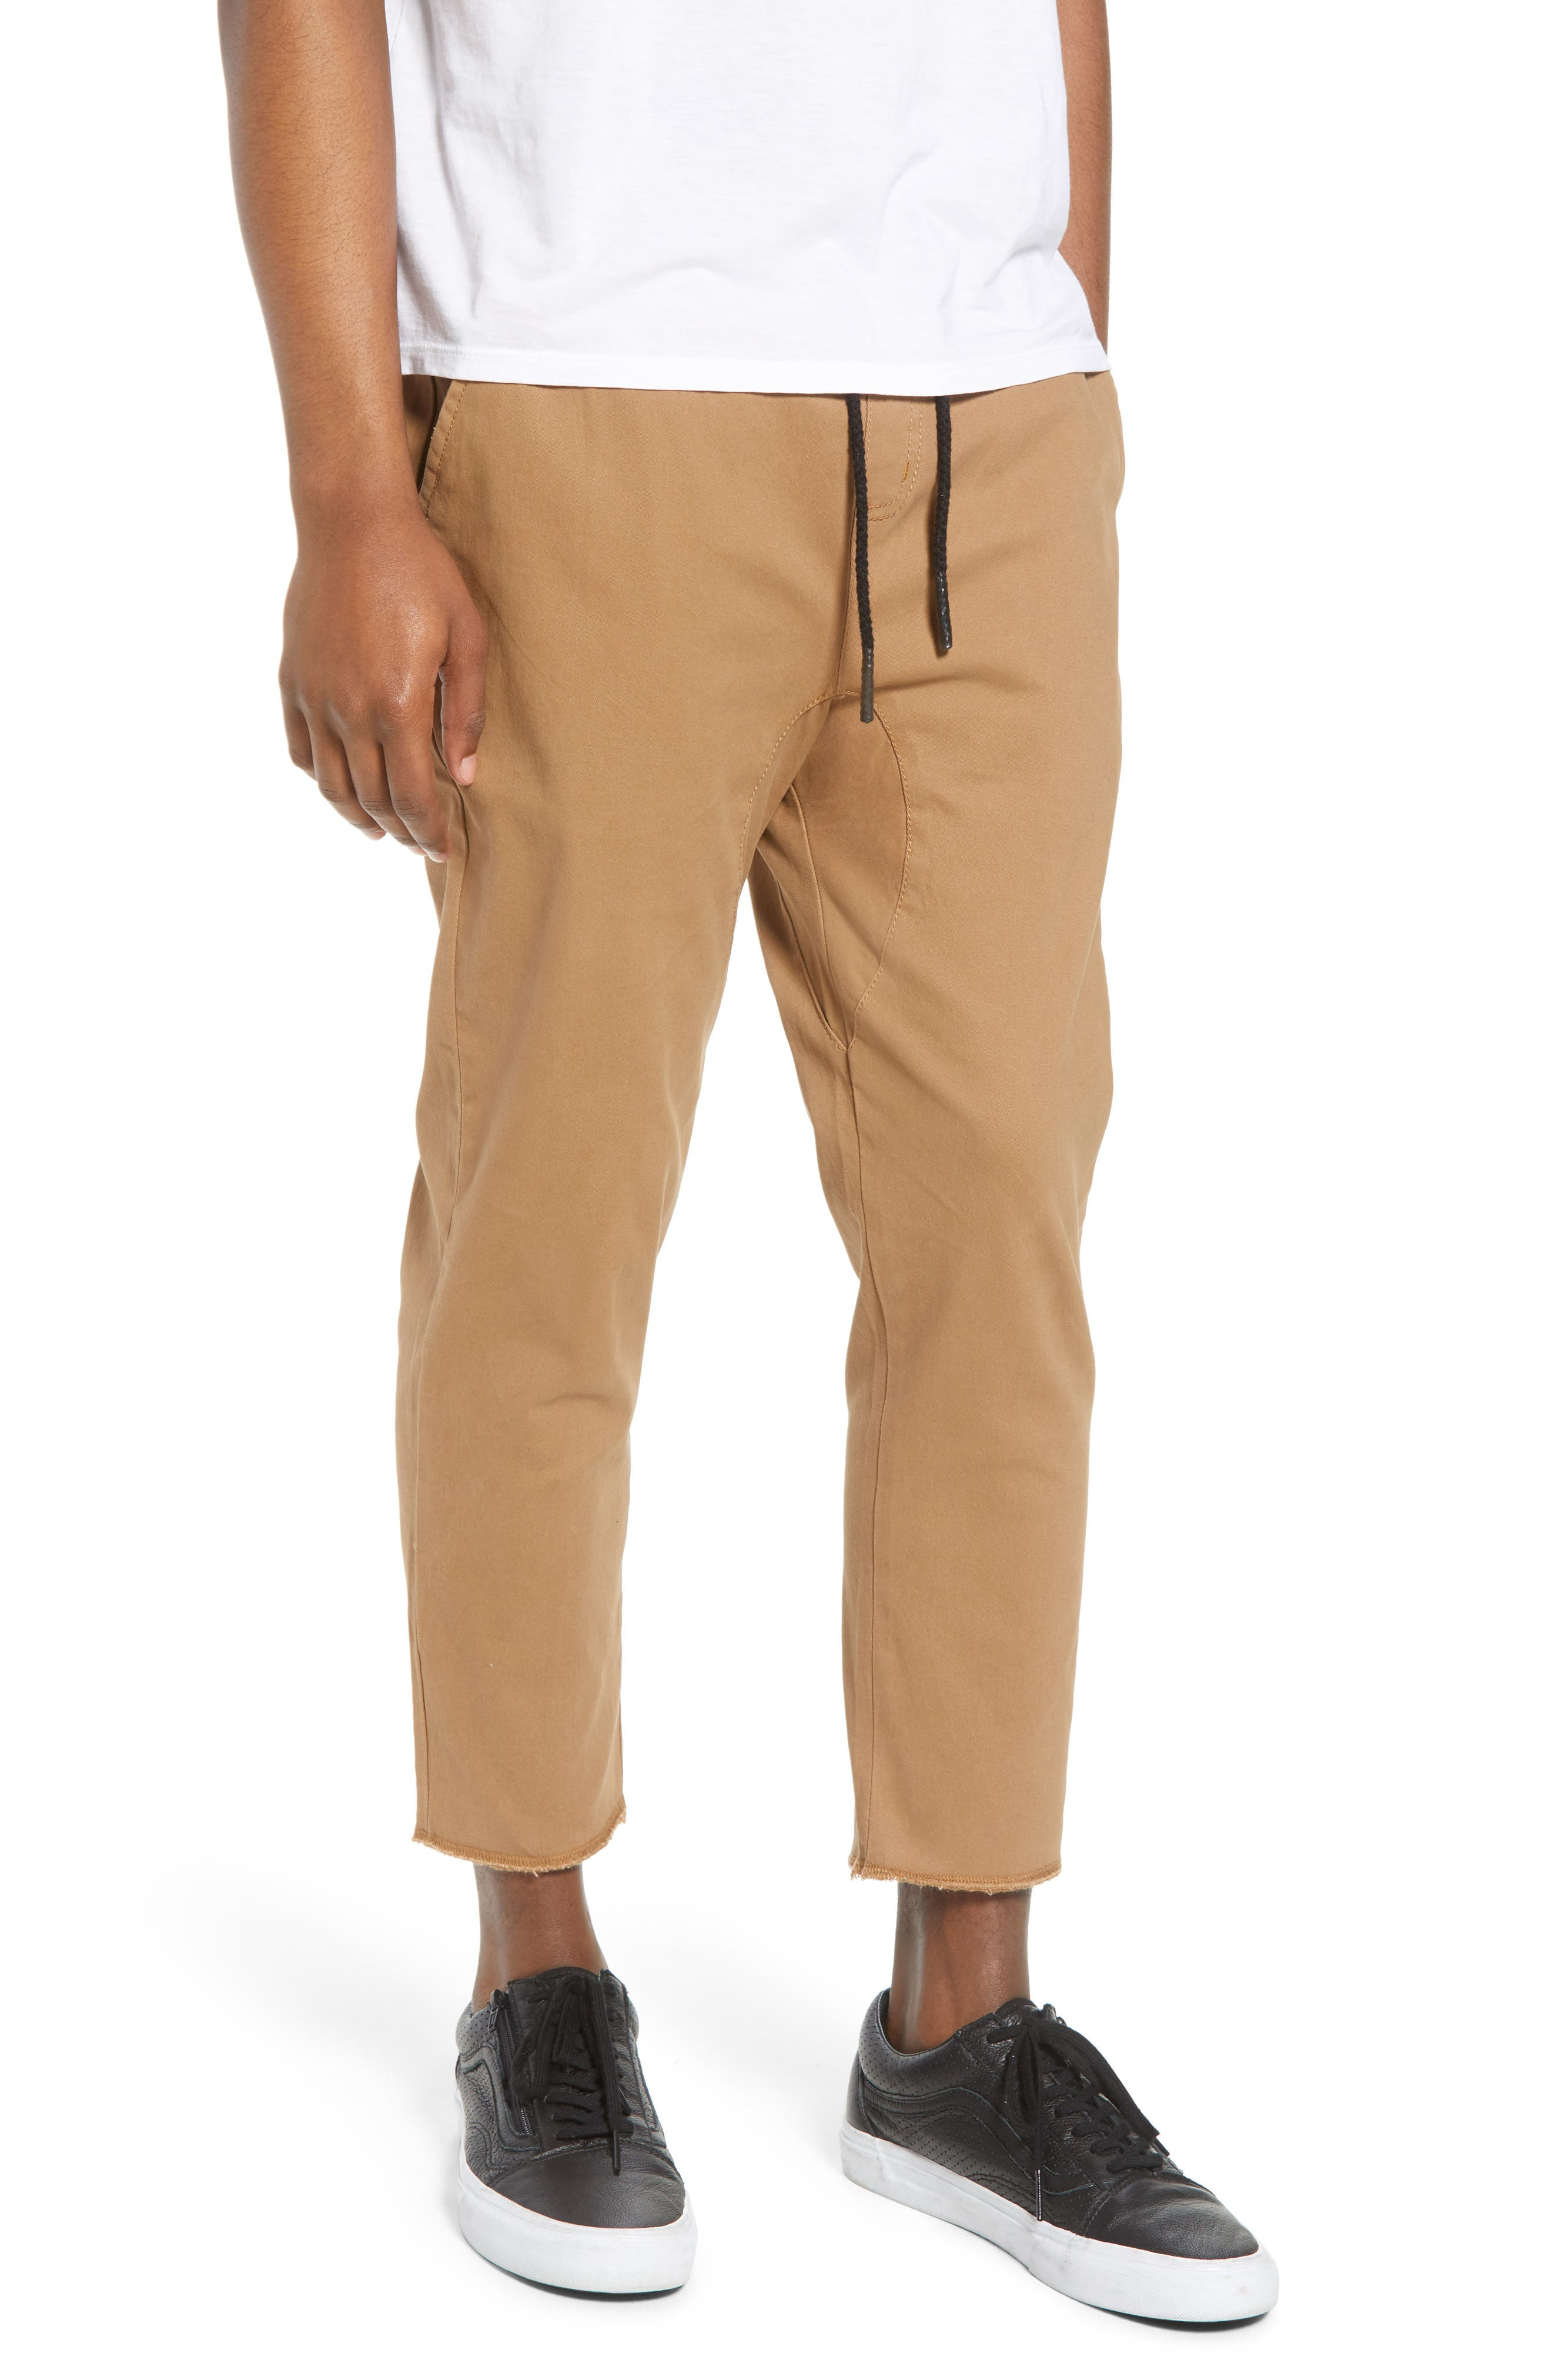 Vacation Slim Fit Crop Pants,                         Main,                         color, Khaki